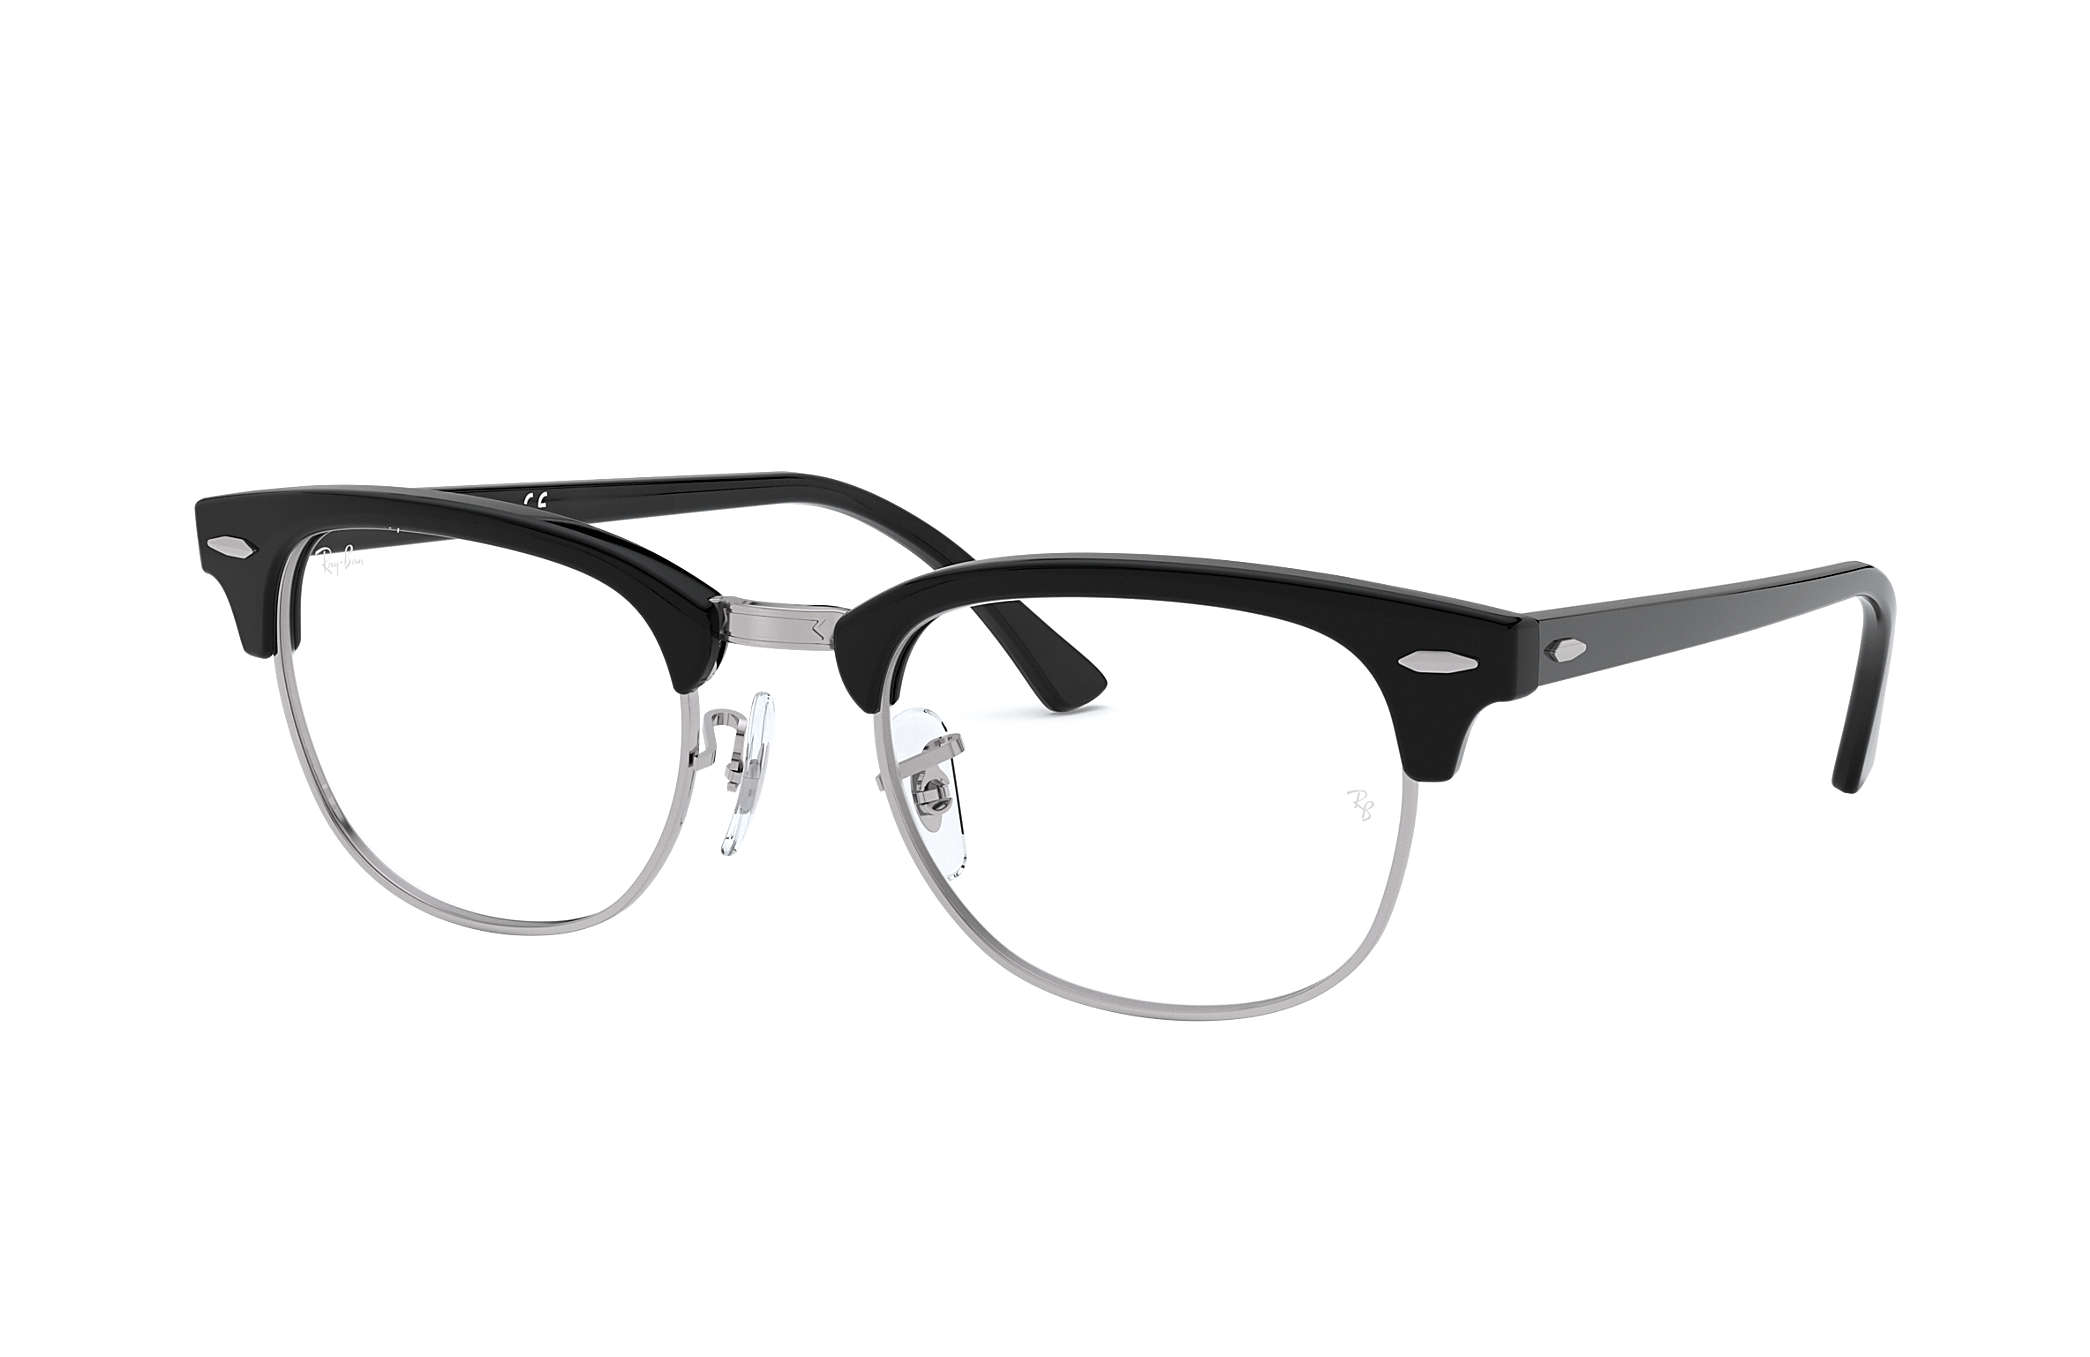 white ray ban clubmaster  PDP_META_DATA_EYEGLASSES??? RB5154 Black Acetate